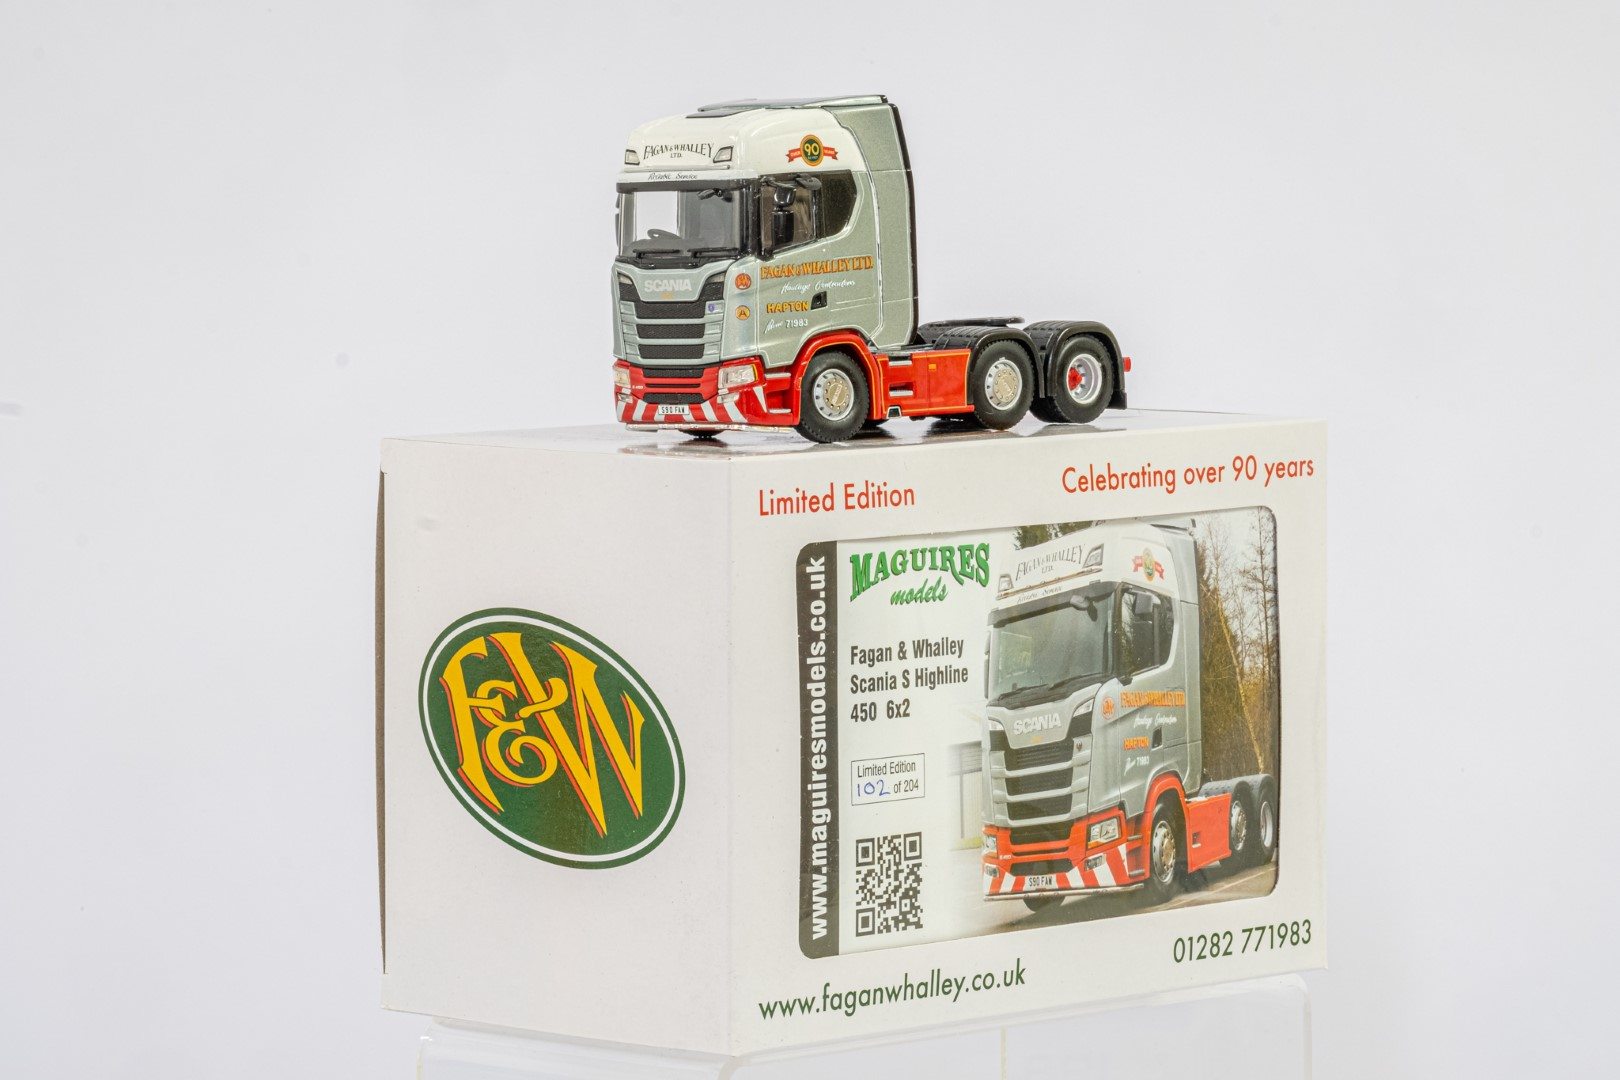 WSI Scania S Highline 450 6x2 Twin Steer Fagan & Whalley - Mint condition - Image 2 of 3